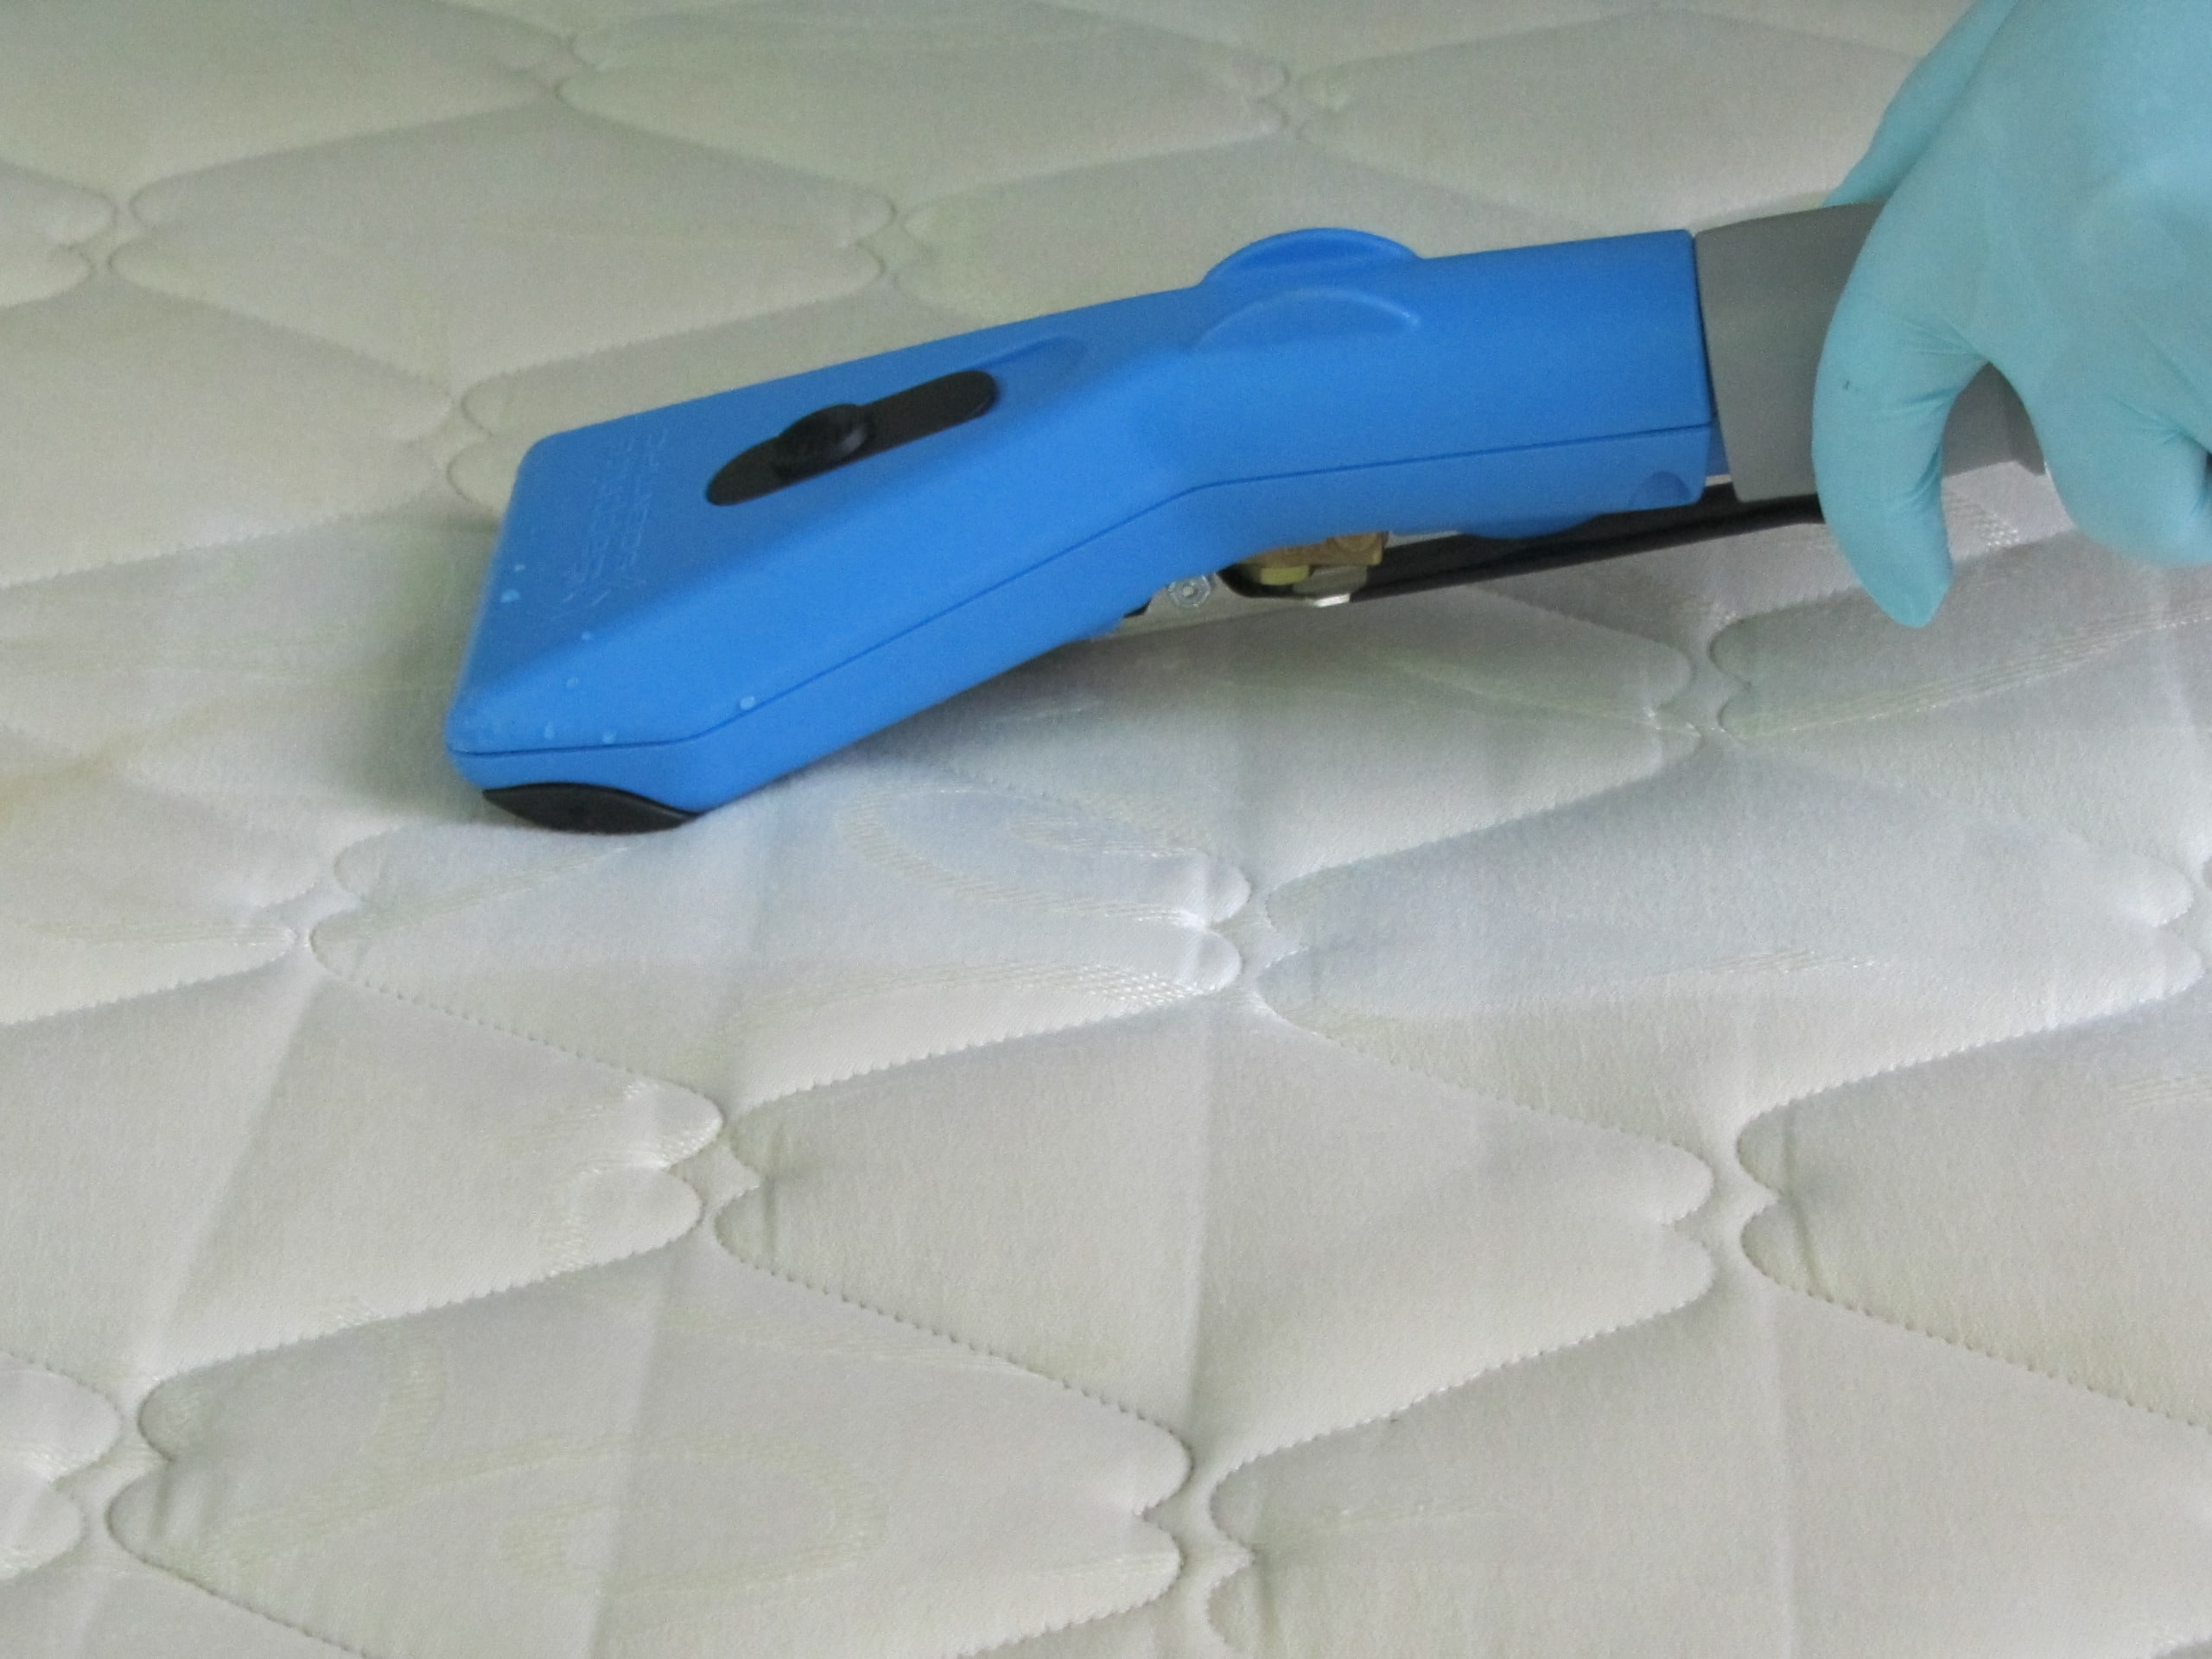 Mattress Cleaning - Sanitising a mattress with a low moisture upholstery tool